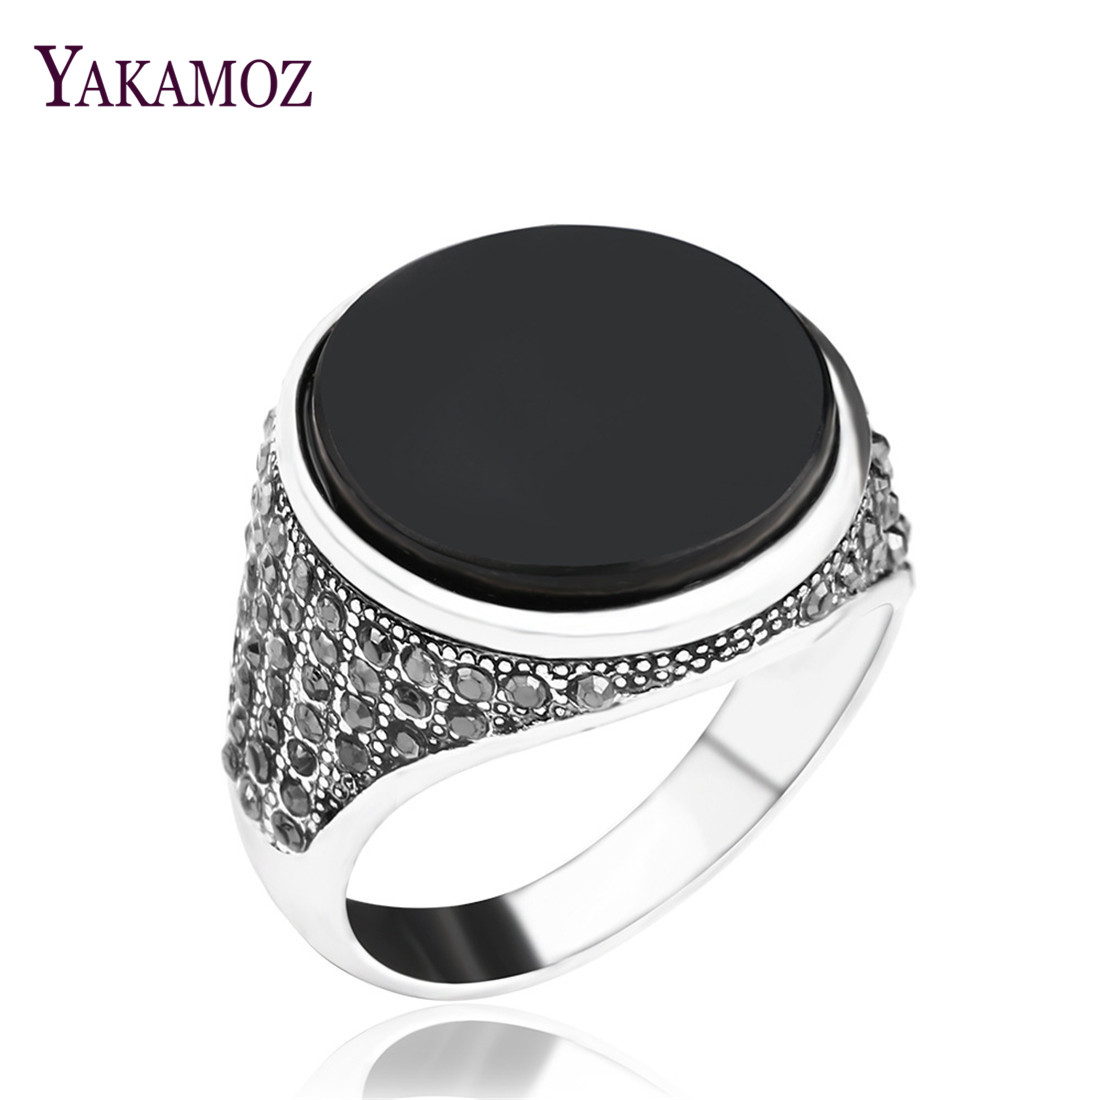 NEW Classic Black Resin Men Ring For Women Antique Silver Plated Turkey Vintage Jewelry Oval Charm Rings For Men-in Engagement Rings from Jewelry & Accessories on Aliexpress.com | Alibaba Group